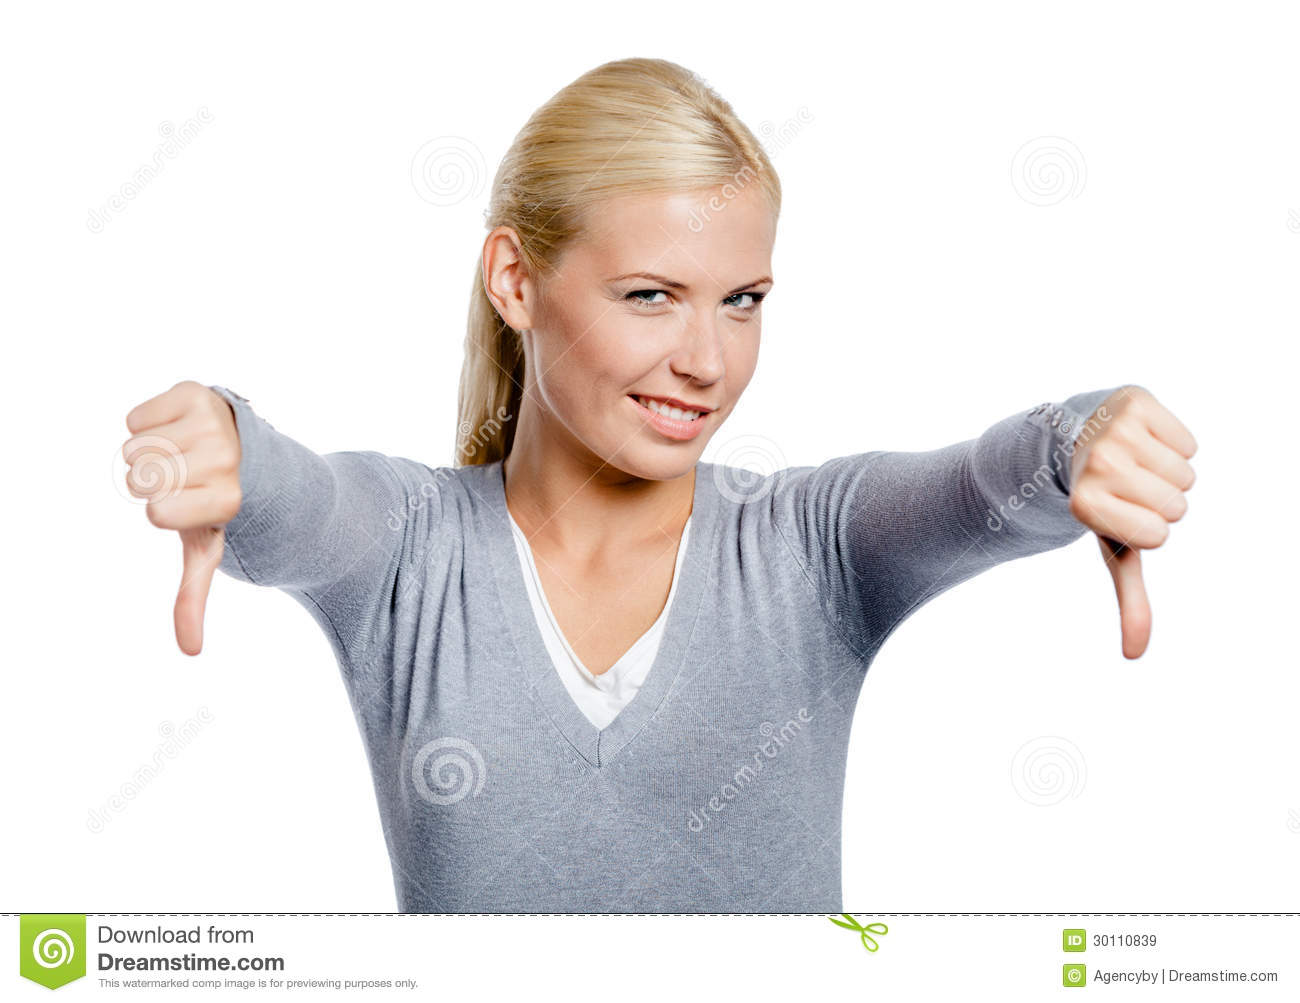 foto de Girl Thumbs Down With Two Hands Stock Image Image of